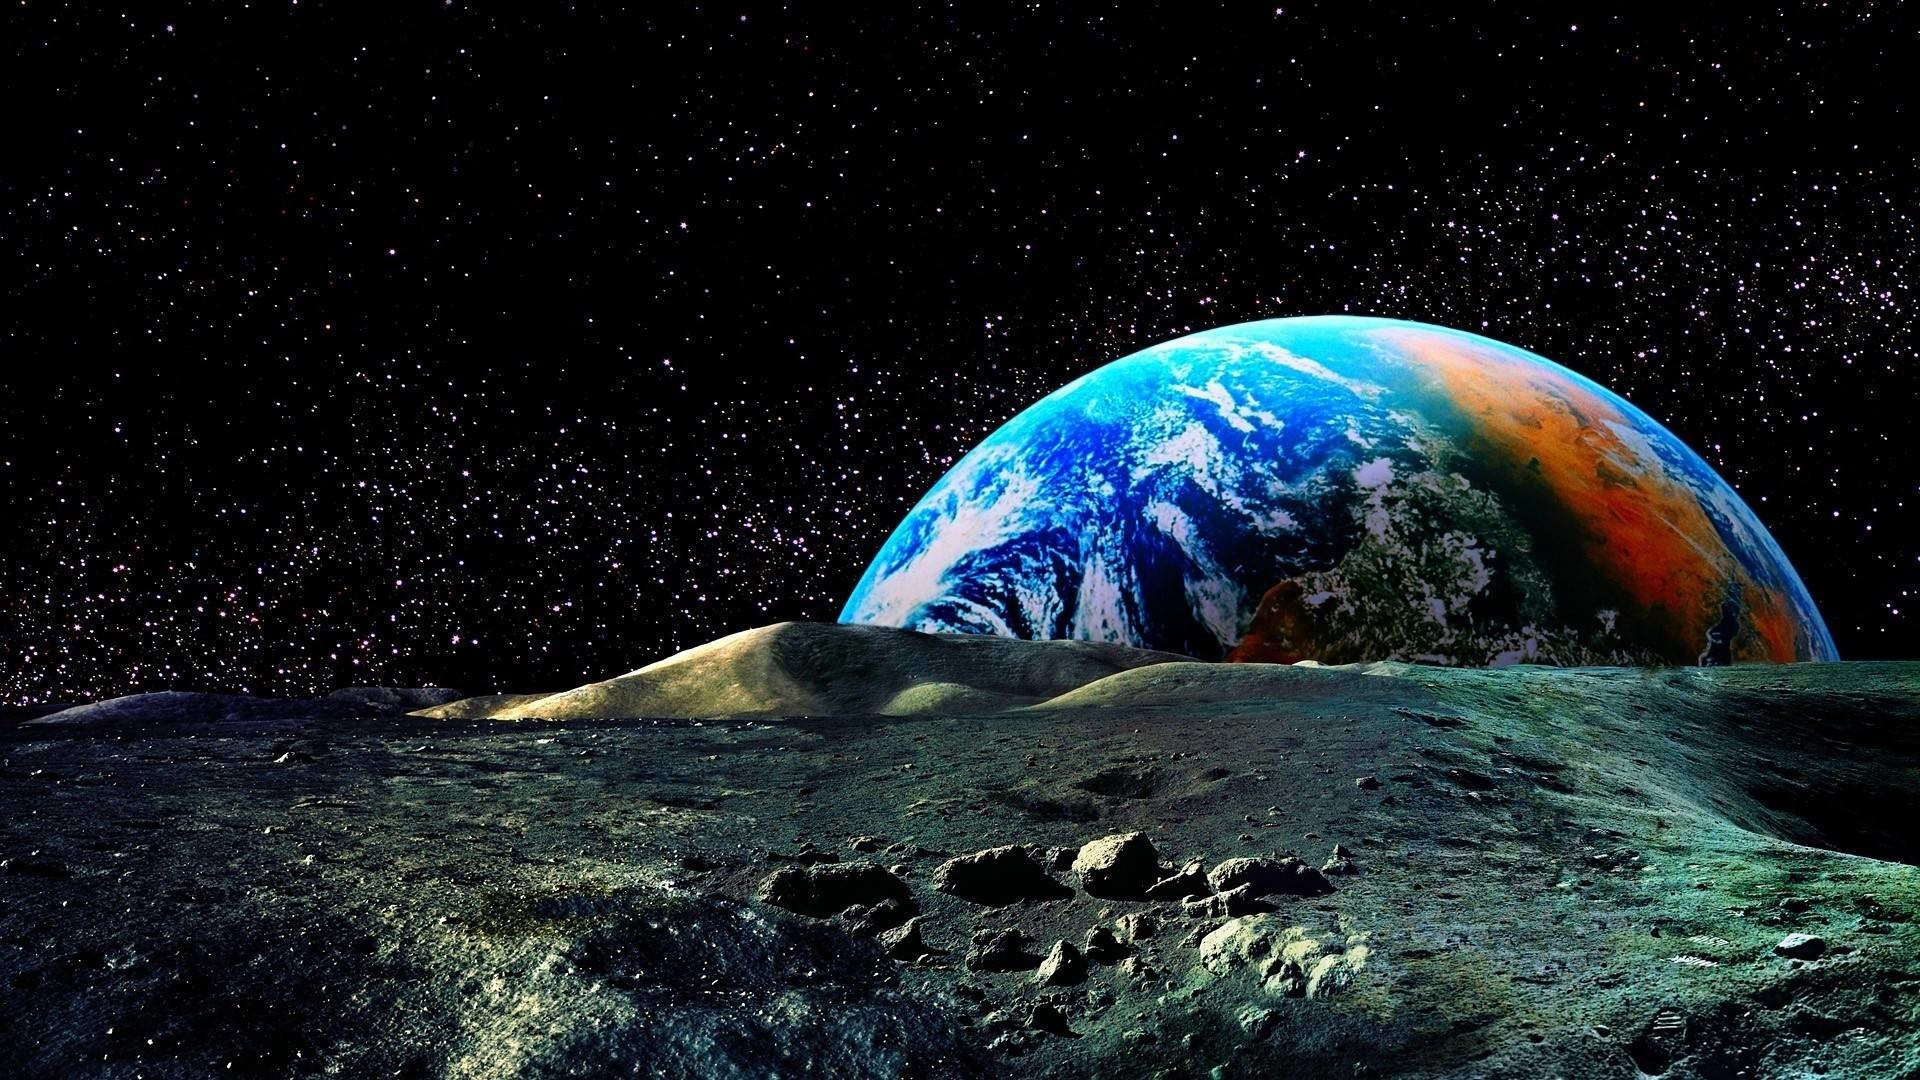 Earth From Space Wallpapers HD.